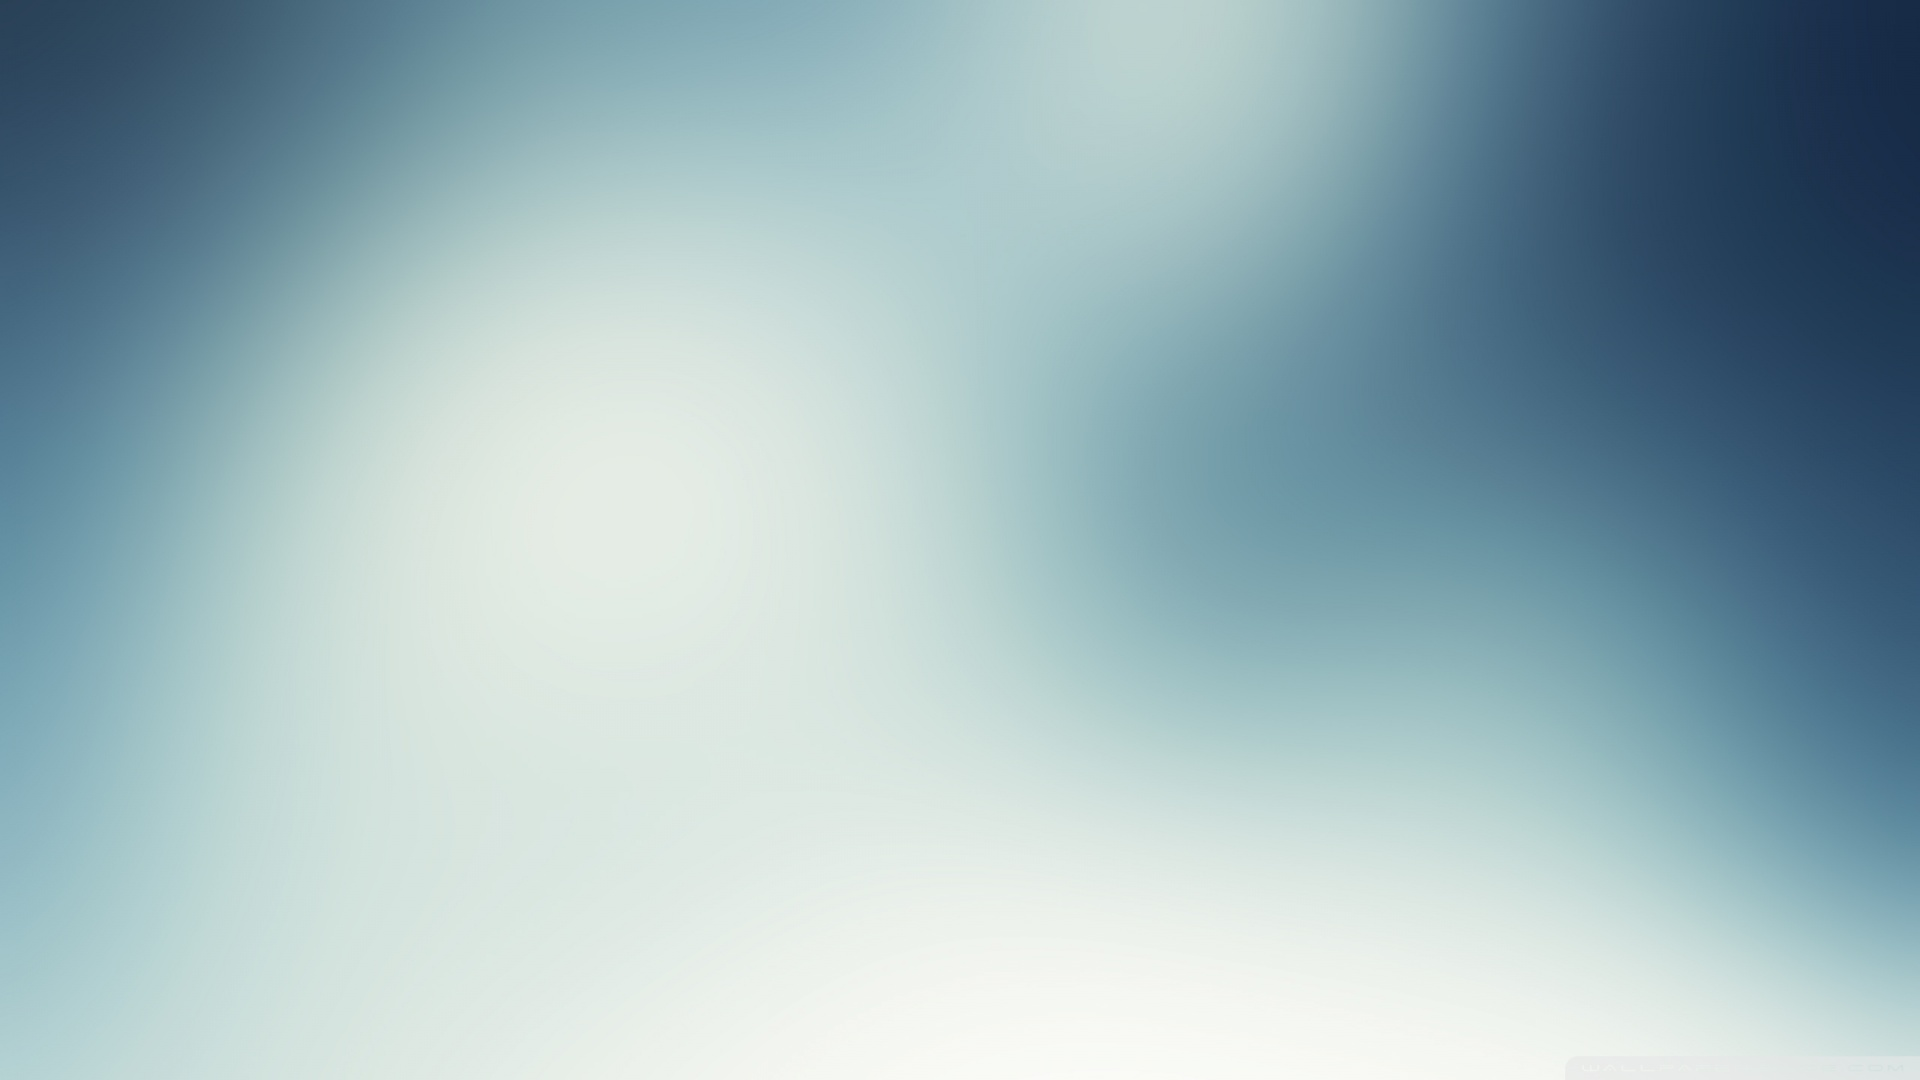 minimalist_background_iv-wallpaper-1920×1080